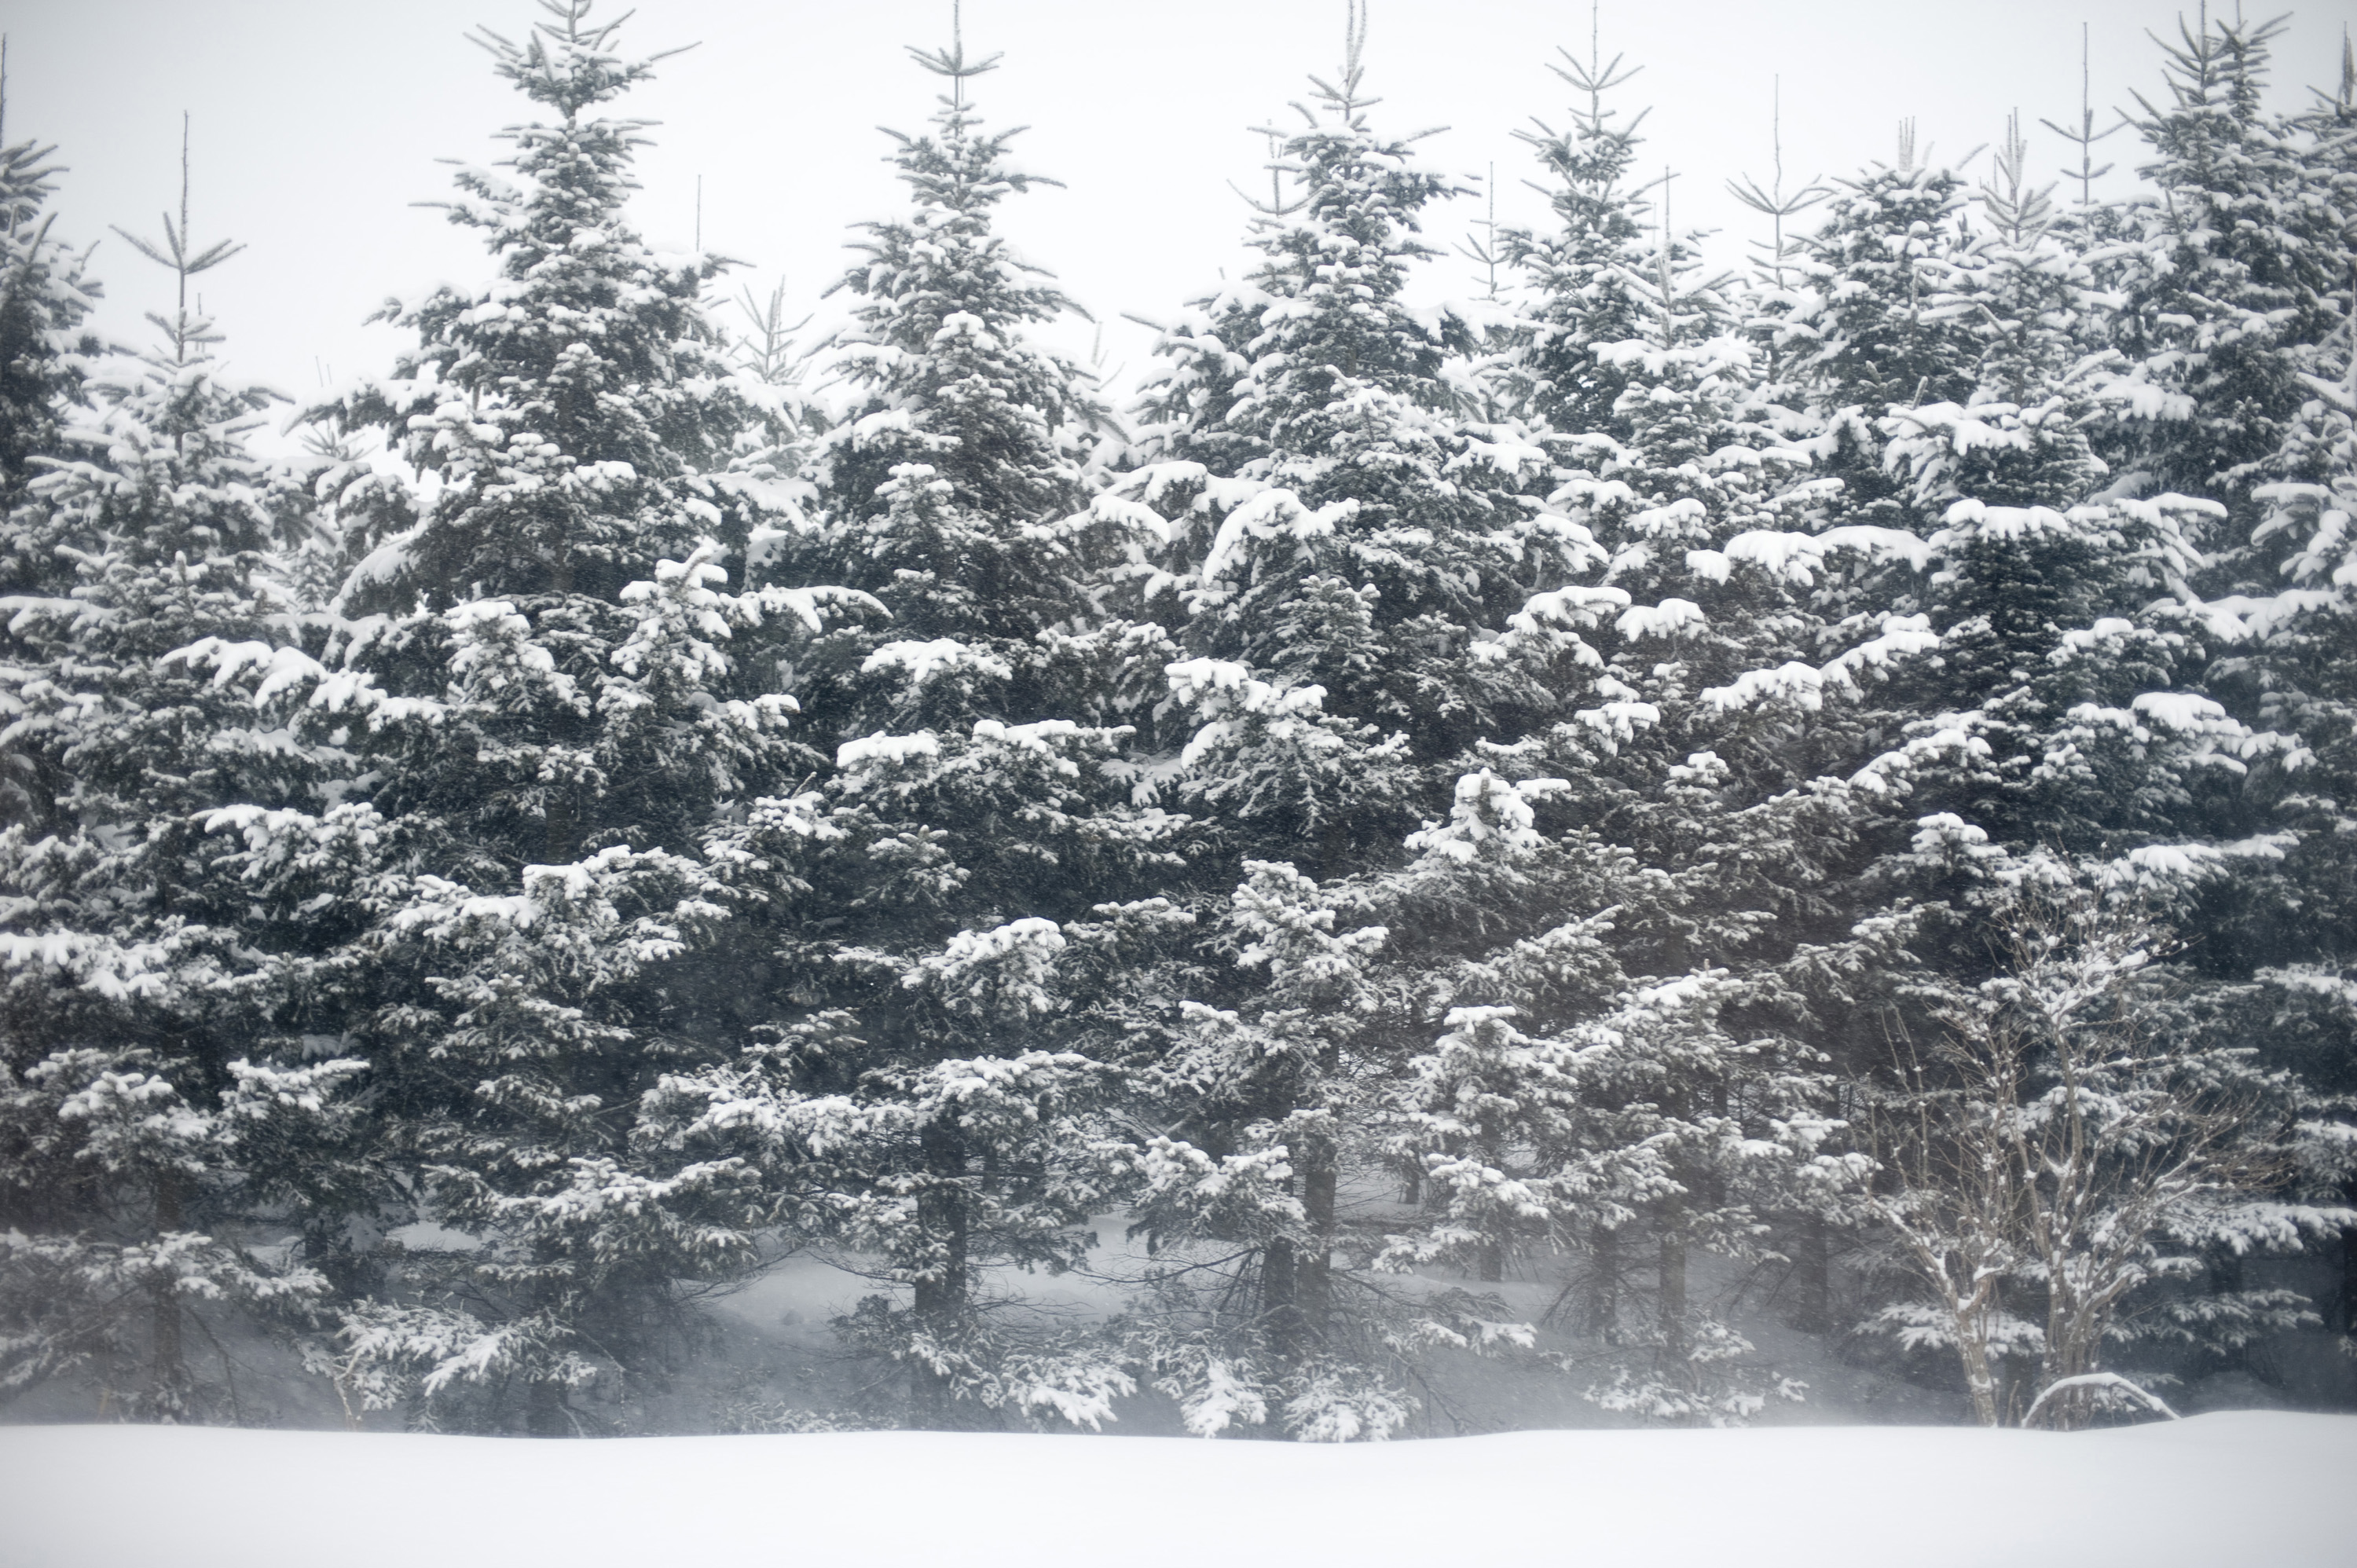 Trees in a winter wonderland 5344 stockarch free stock - Images of pine trees in snow ...